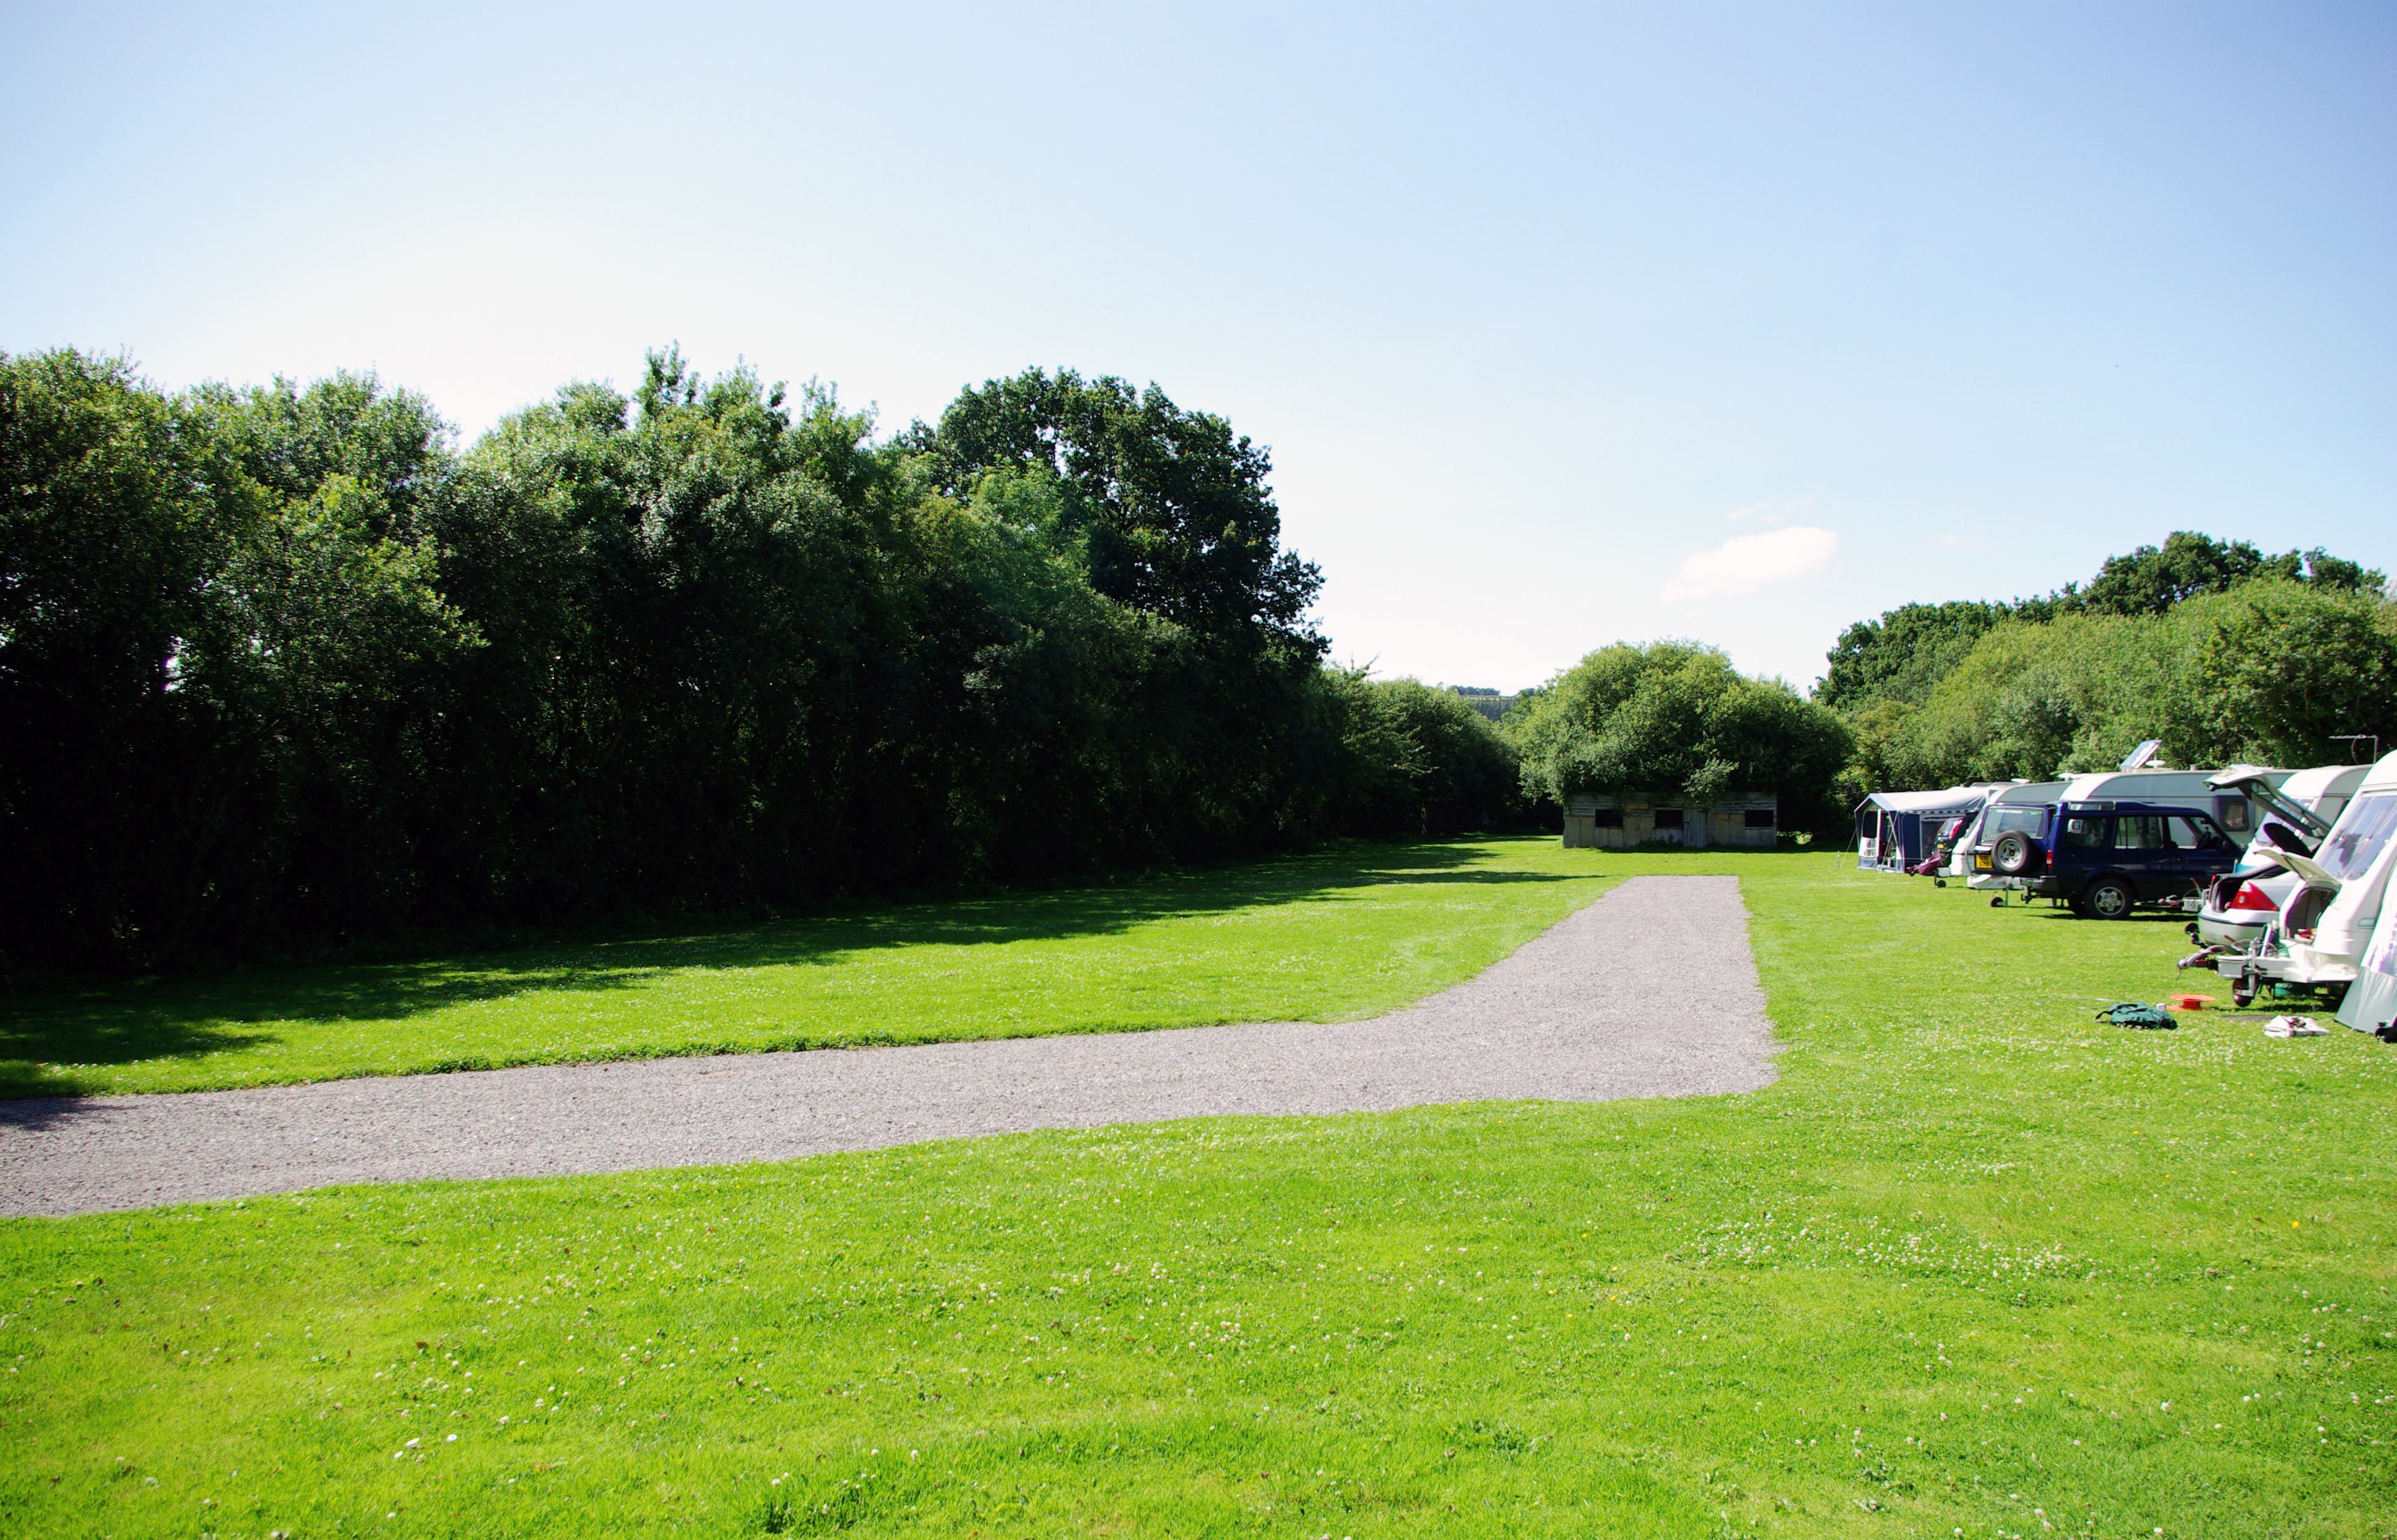 Our Campsite is situated to the rear of the bed and breakfast. It is a basic site with a few essential facilities; the perfect place to escape and enjoy the fresh air.